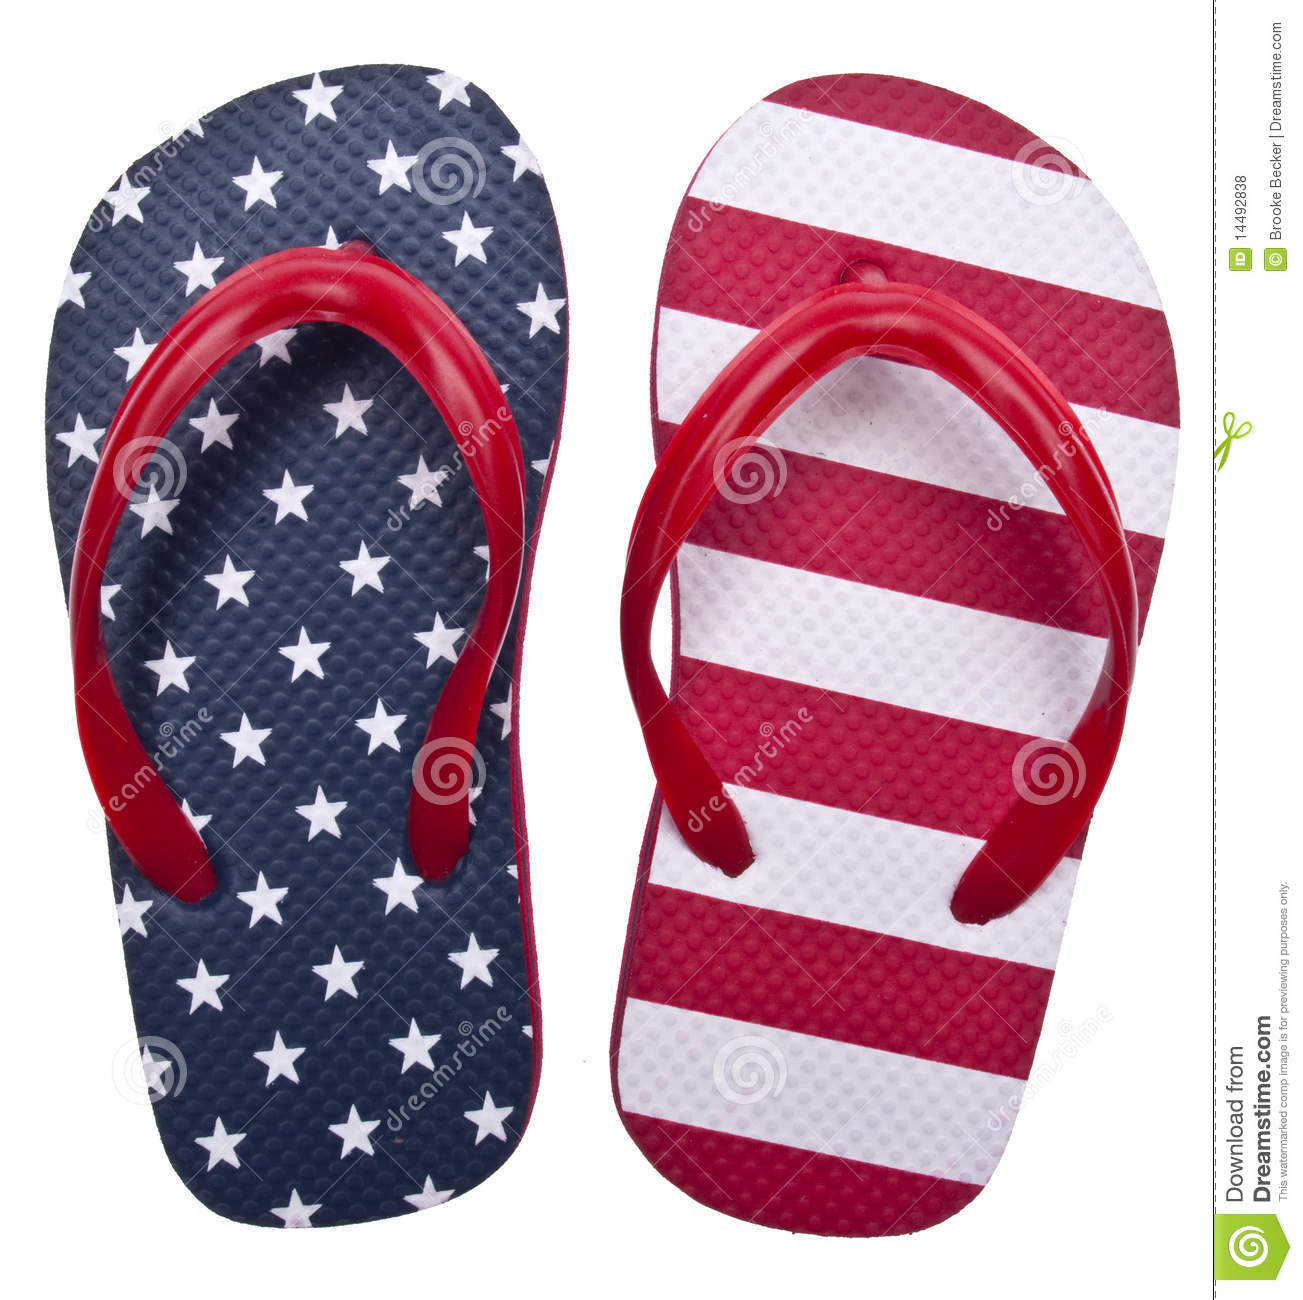 Patriotic Red White And Blue Flip Flop Sandals Ready For The 4th Of